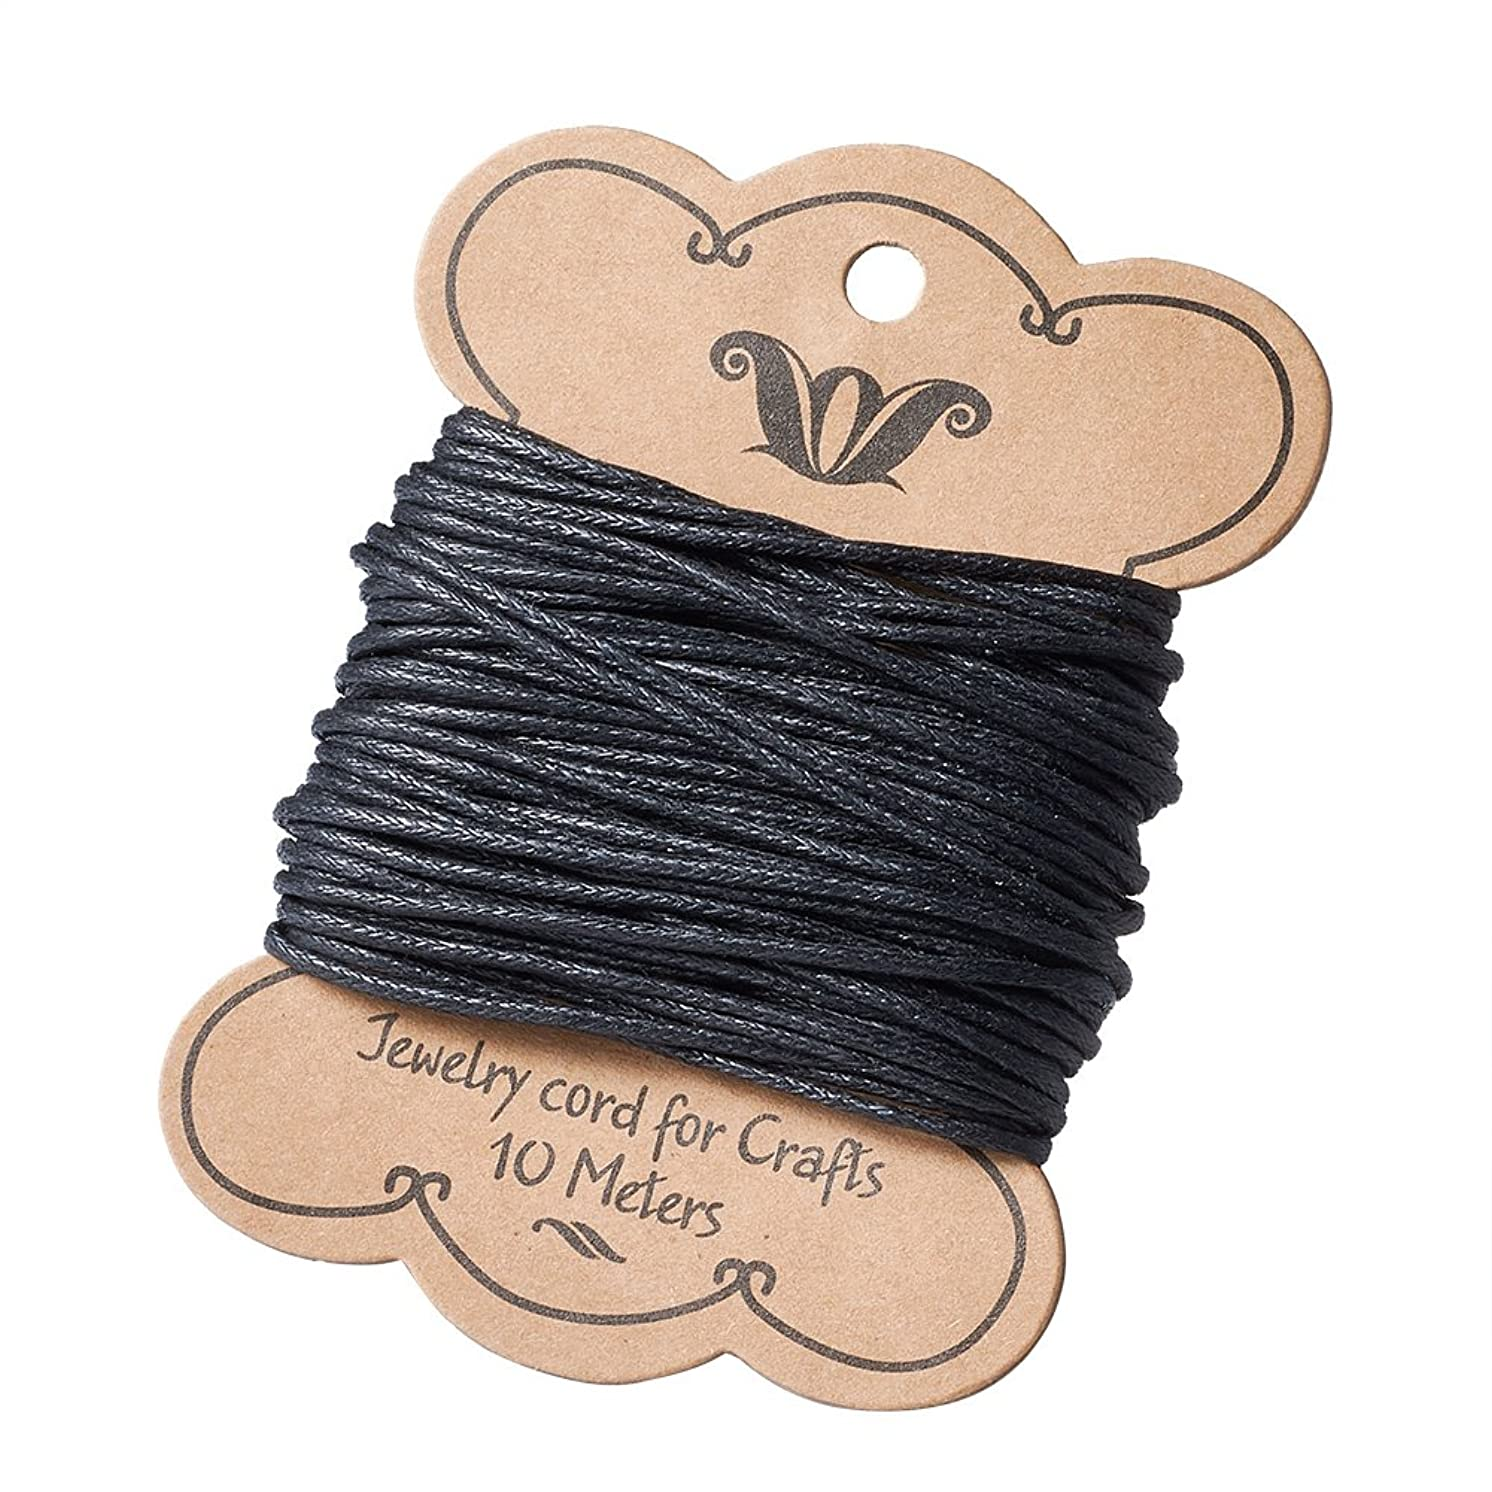 Pandahall 11Yards/10M 1.2mm Cotton Polyester Waxed Cord Macrame String Linen Thread Wire Black Jewelry Making Beading Necklace Making Leathercraft Supplies